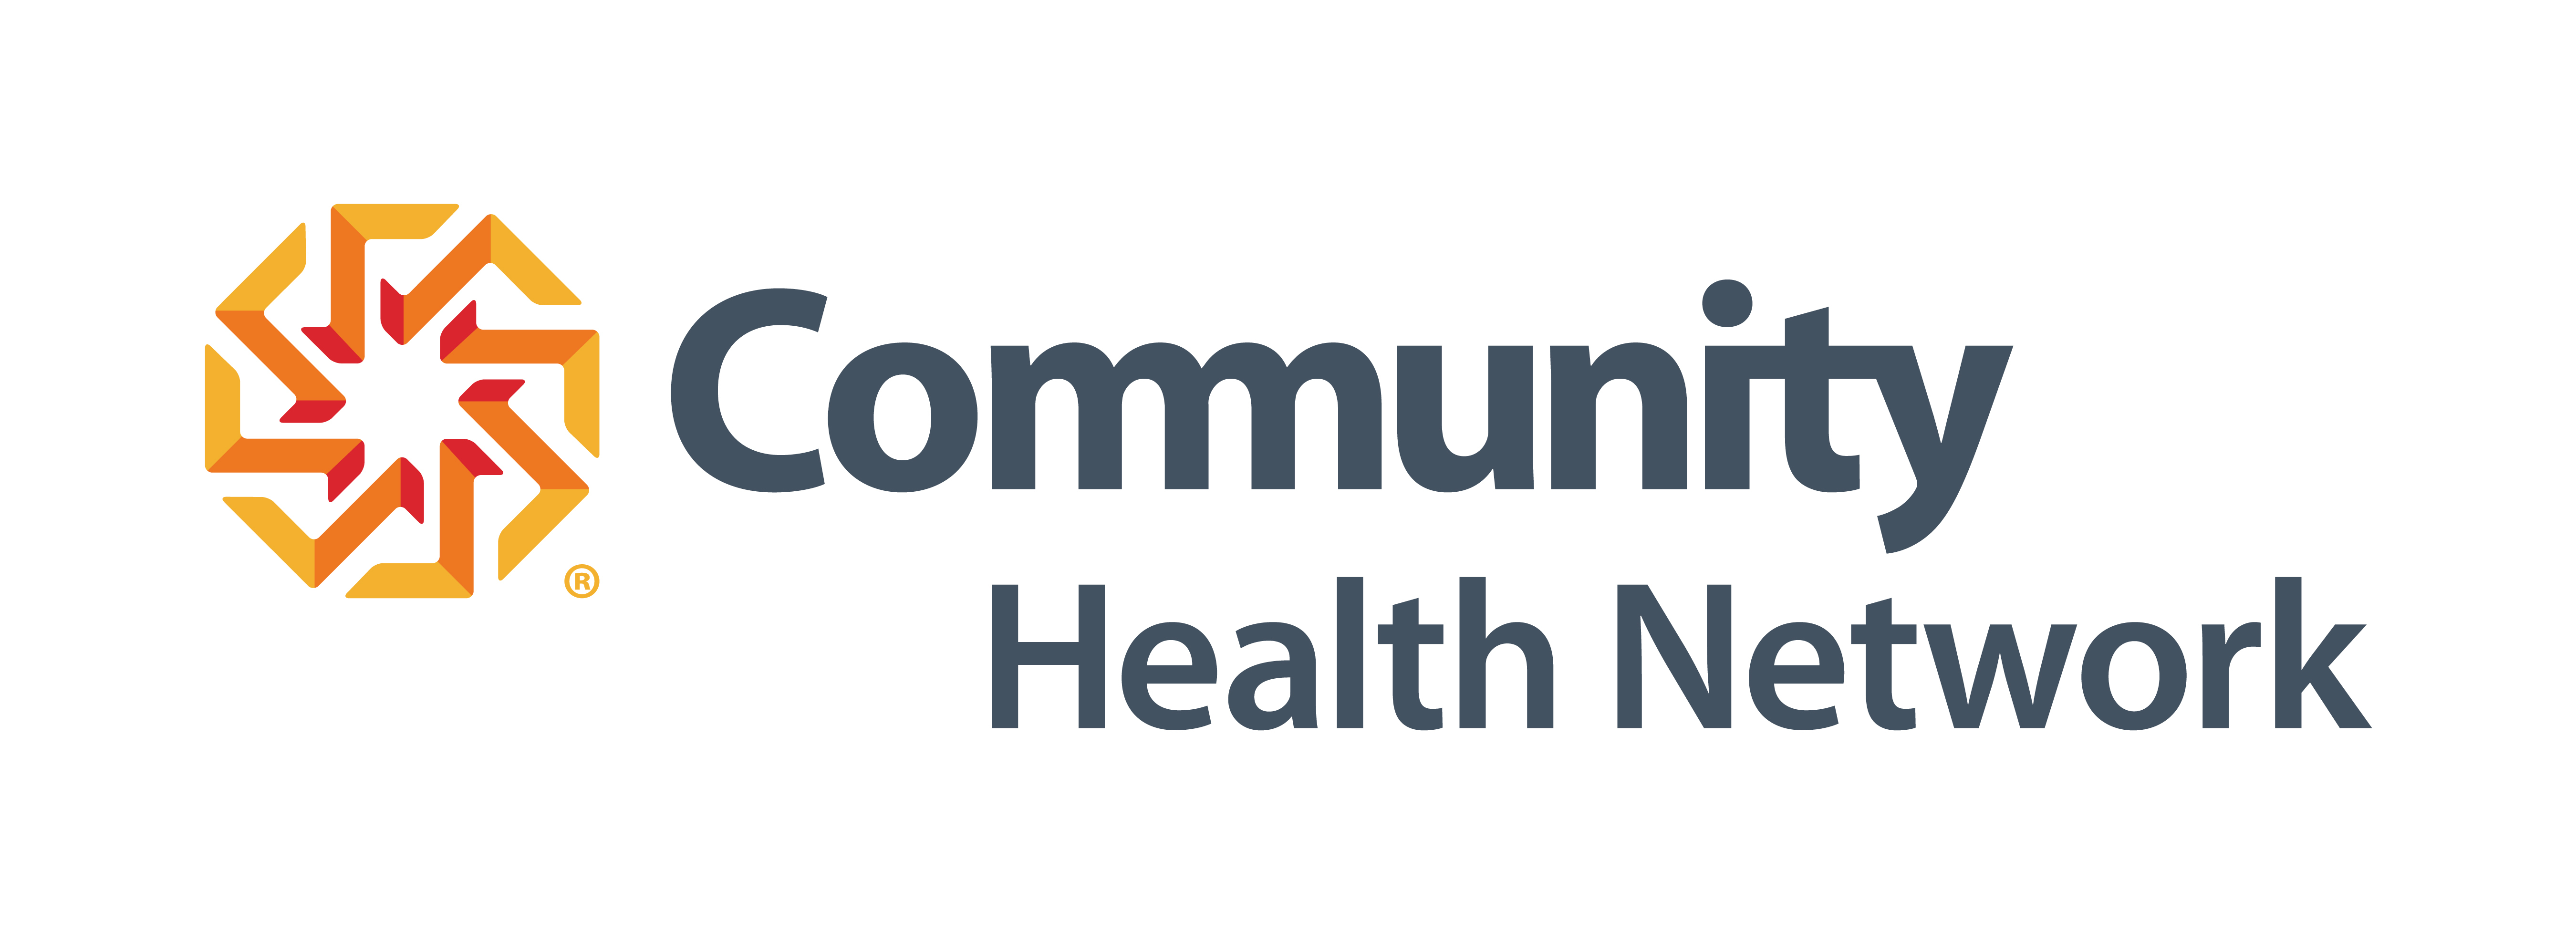 cambridge hospital community health network Jonathan opraseuth is a practicing diagnostic radiology doctor in cambridge, ma.